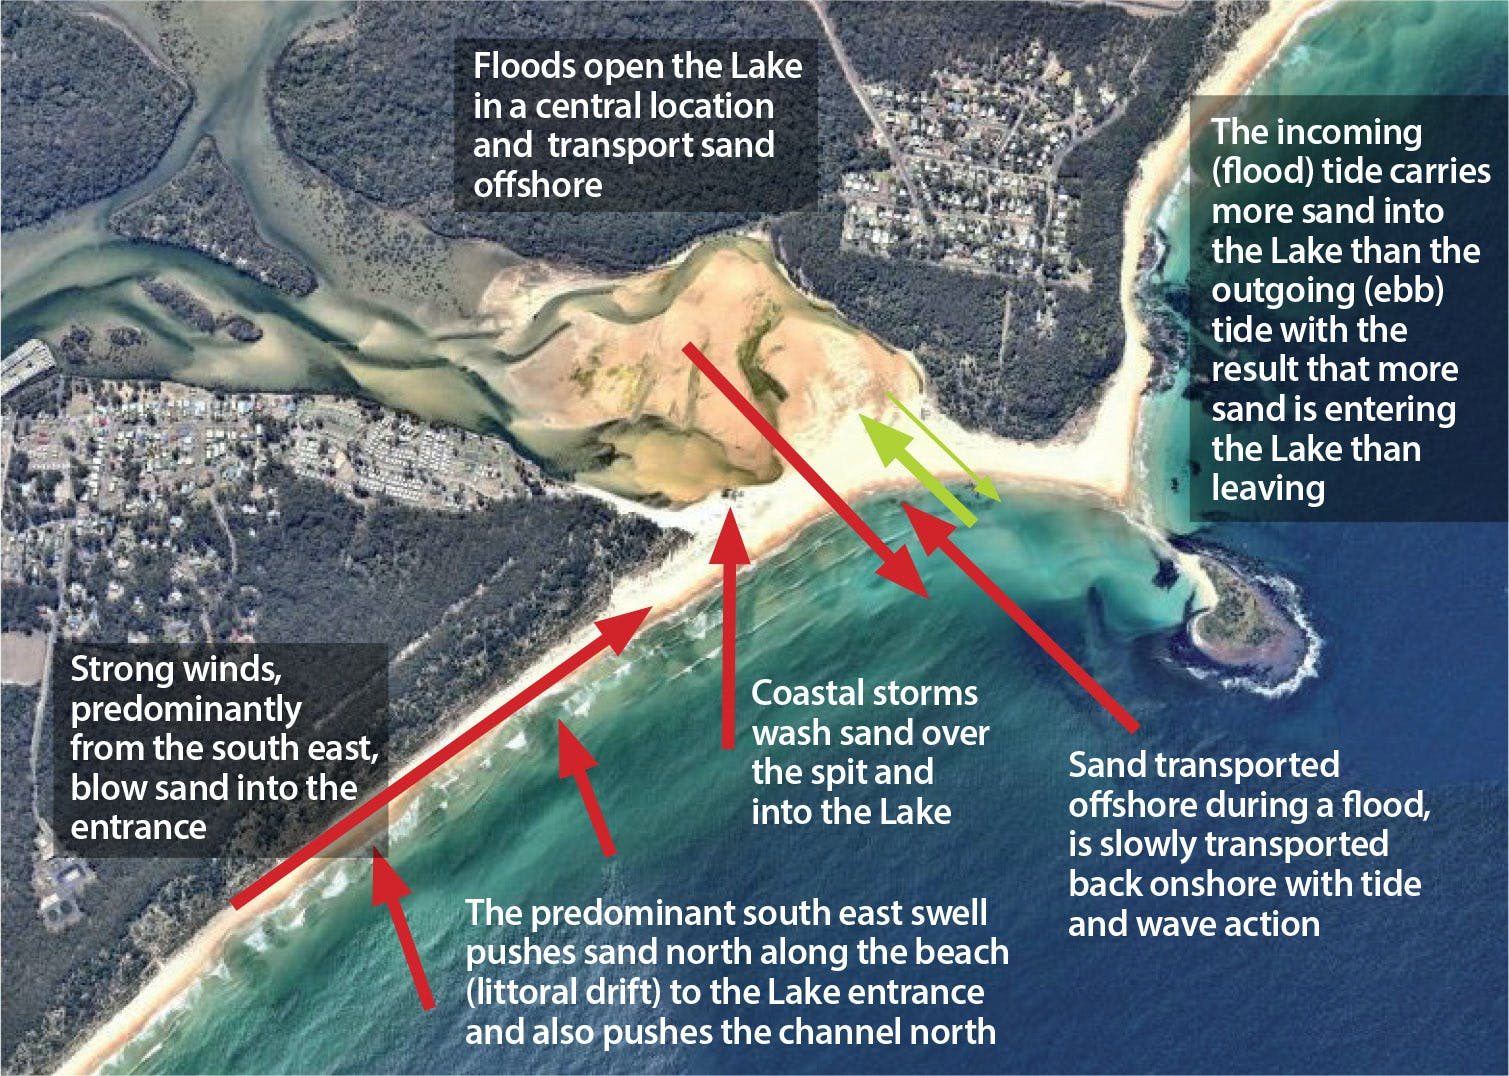 Diagram illustrating the changes to the Lake's entrance causes by water and wind